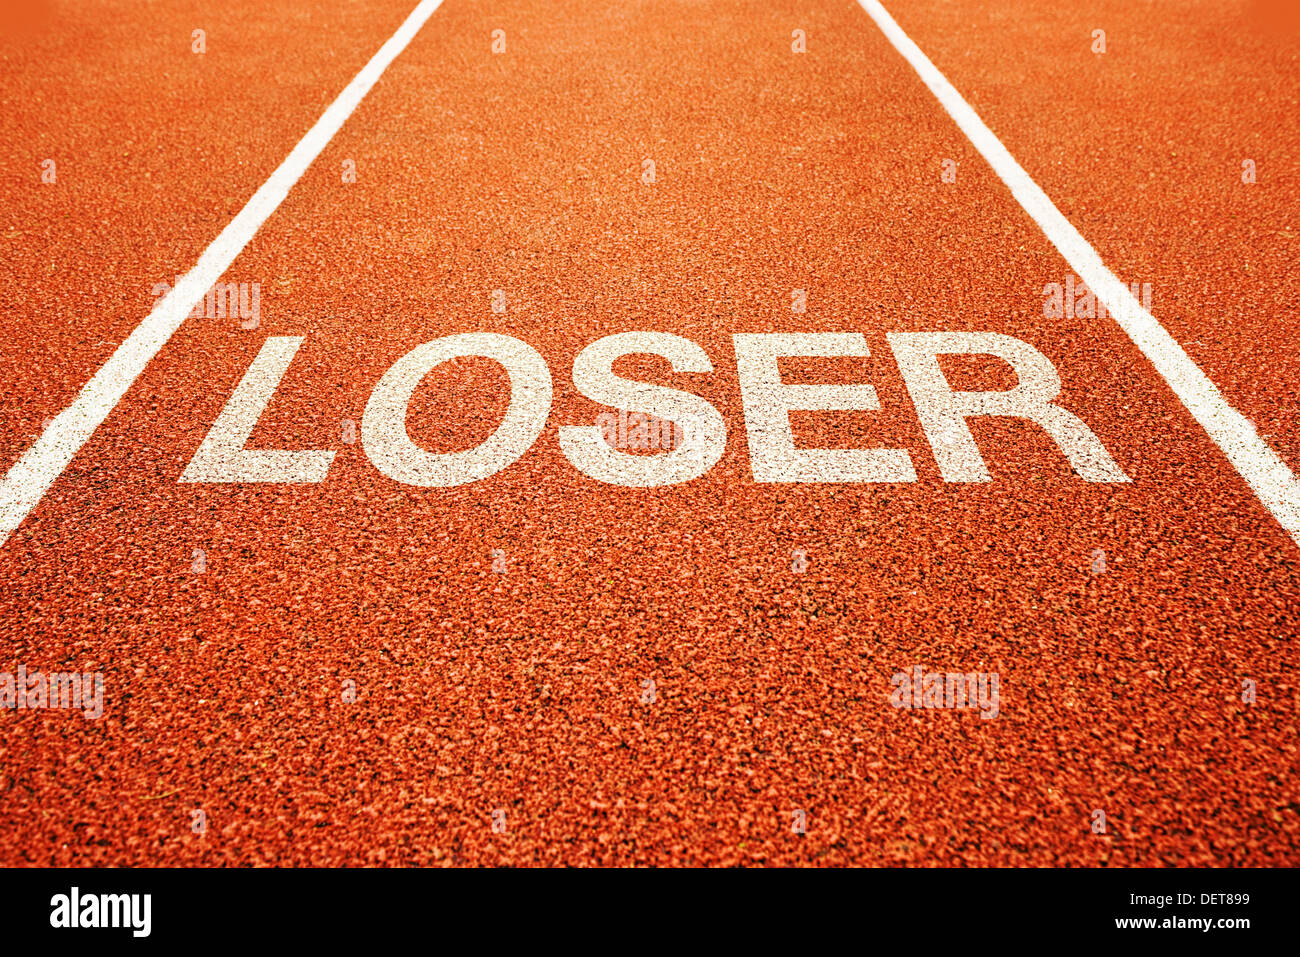 Loser on athletics all weather running track - Stock Image